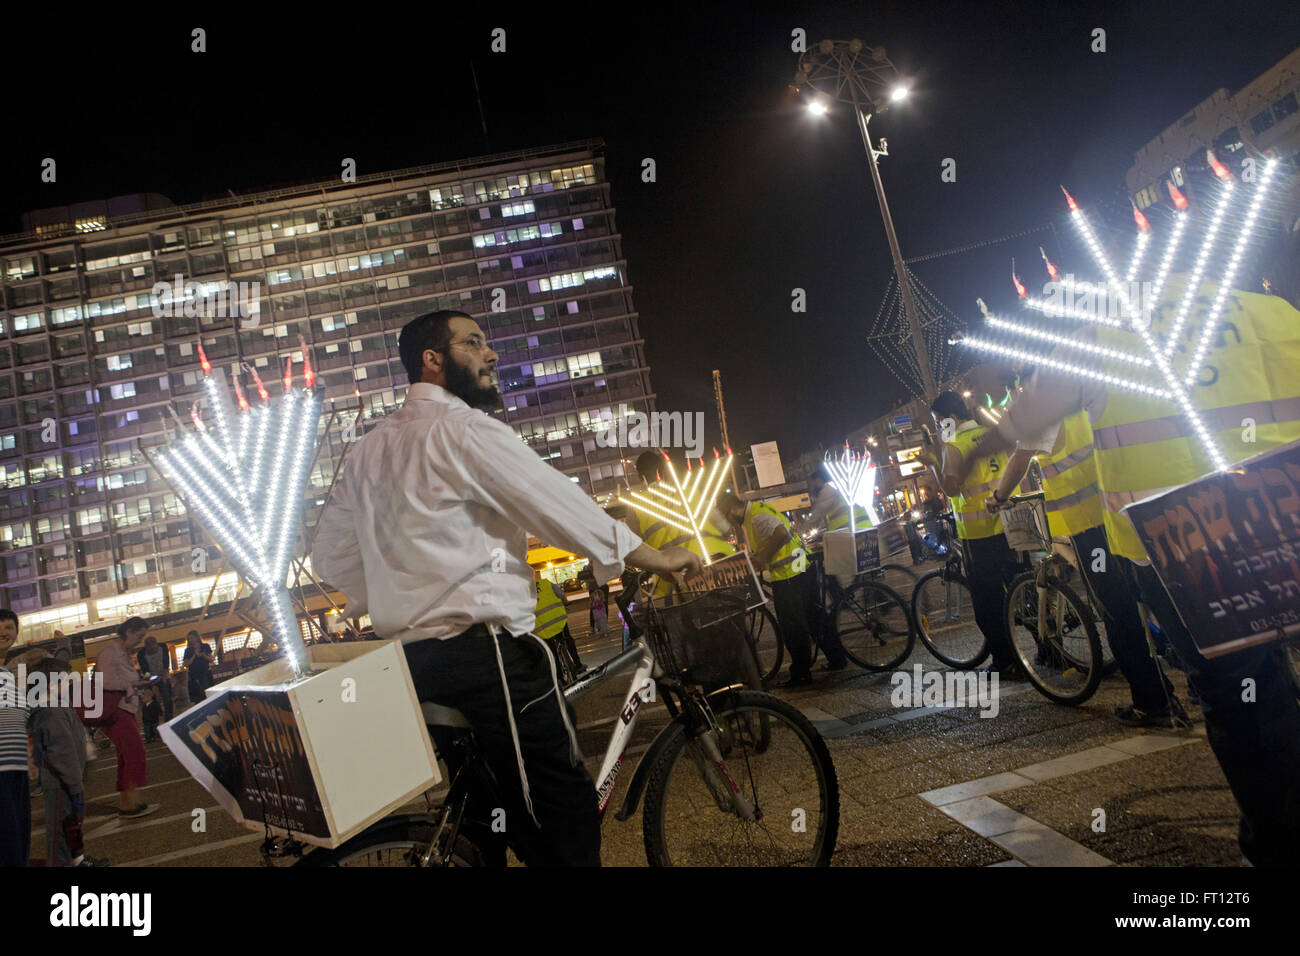 Hanukkah celebrations on bicycles in Rabin Square, Tel-Aviv, Israel, Asia - Stock Image